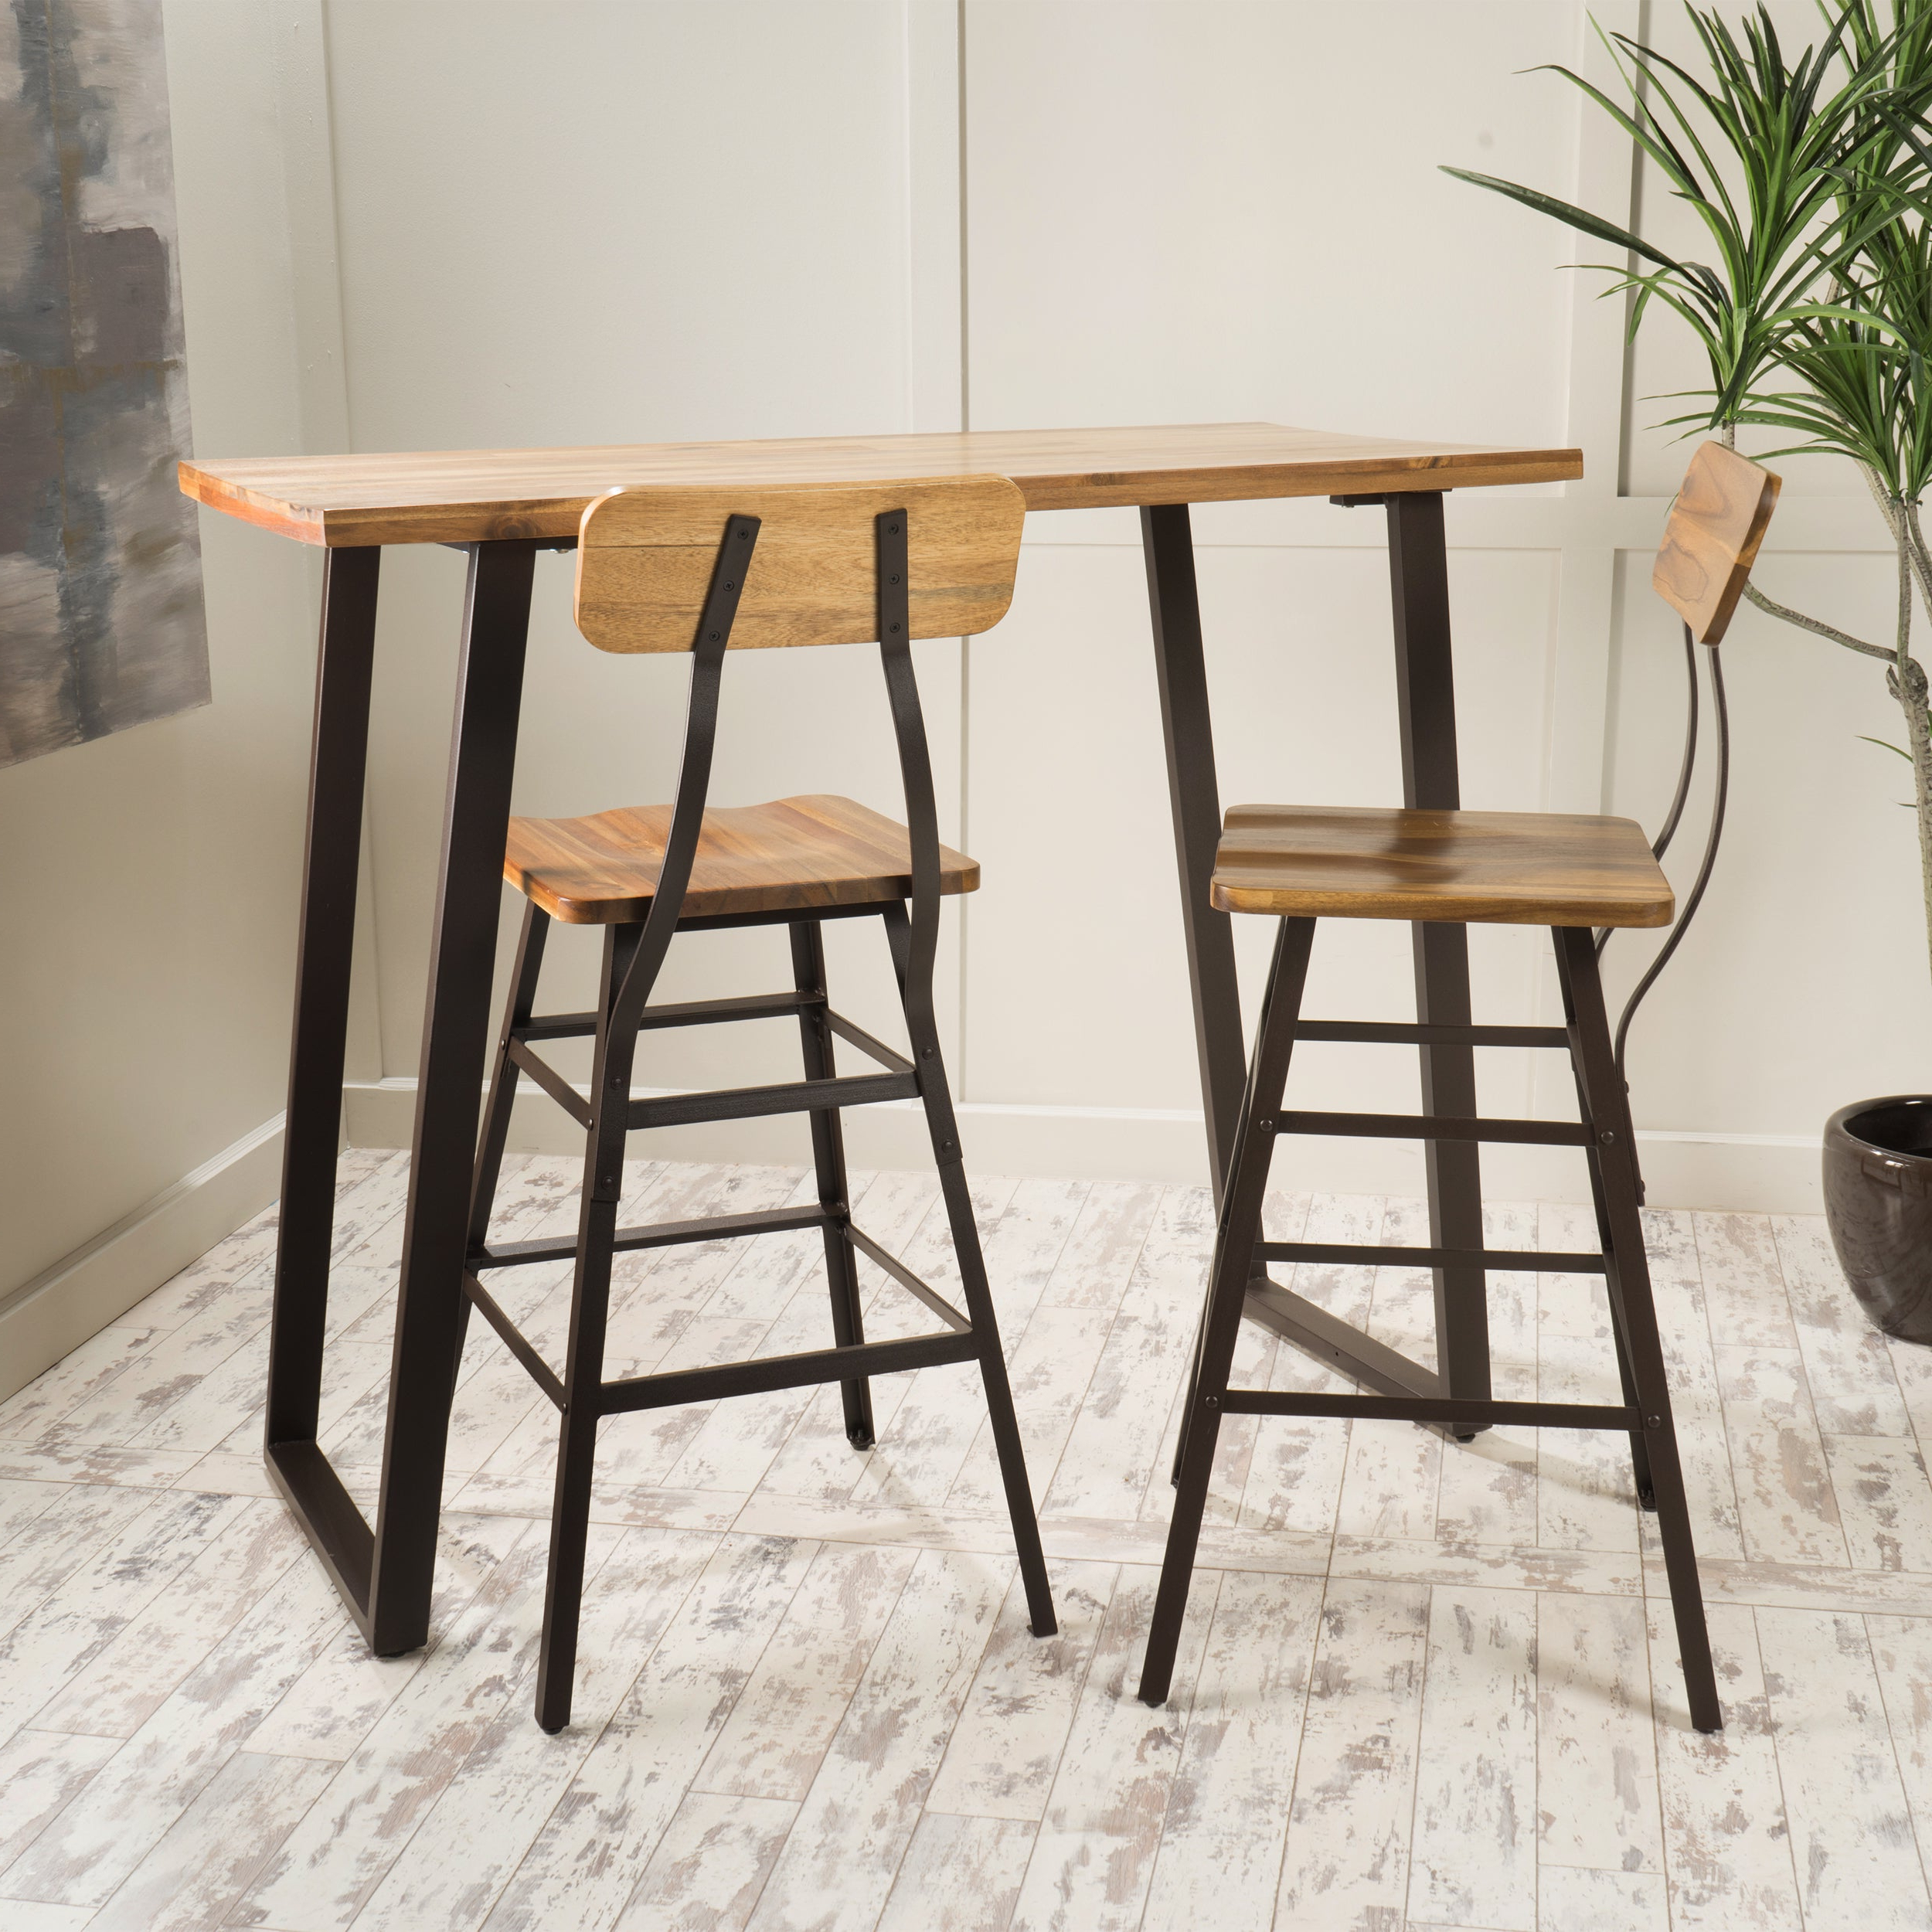 2019 Kaya 3 Piece Dining Sets Intended For Shop Ramona 3 Piece Acacia Wood Bar Setchristopher Knight Home (View 1 of 25)